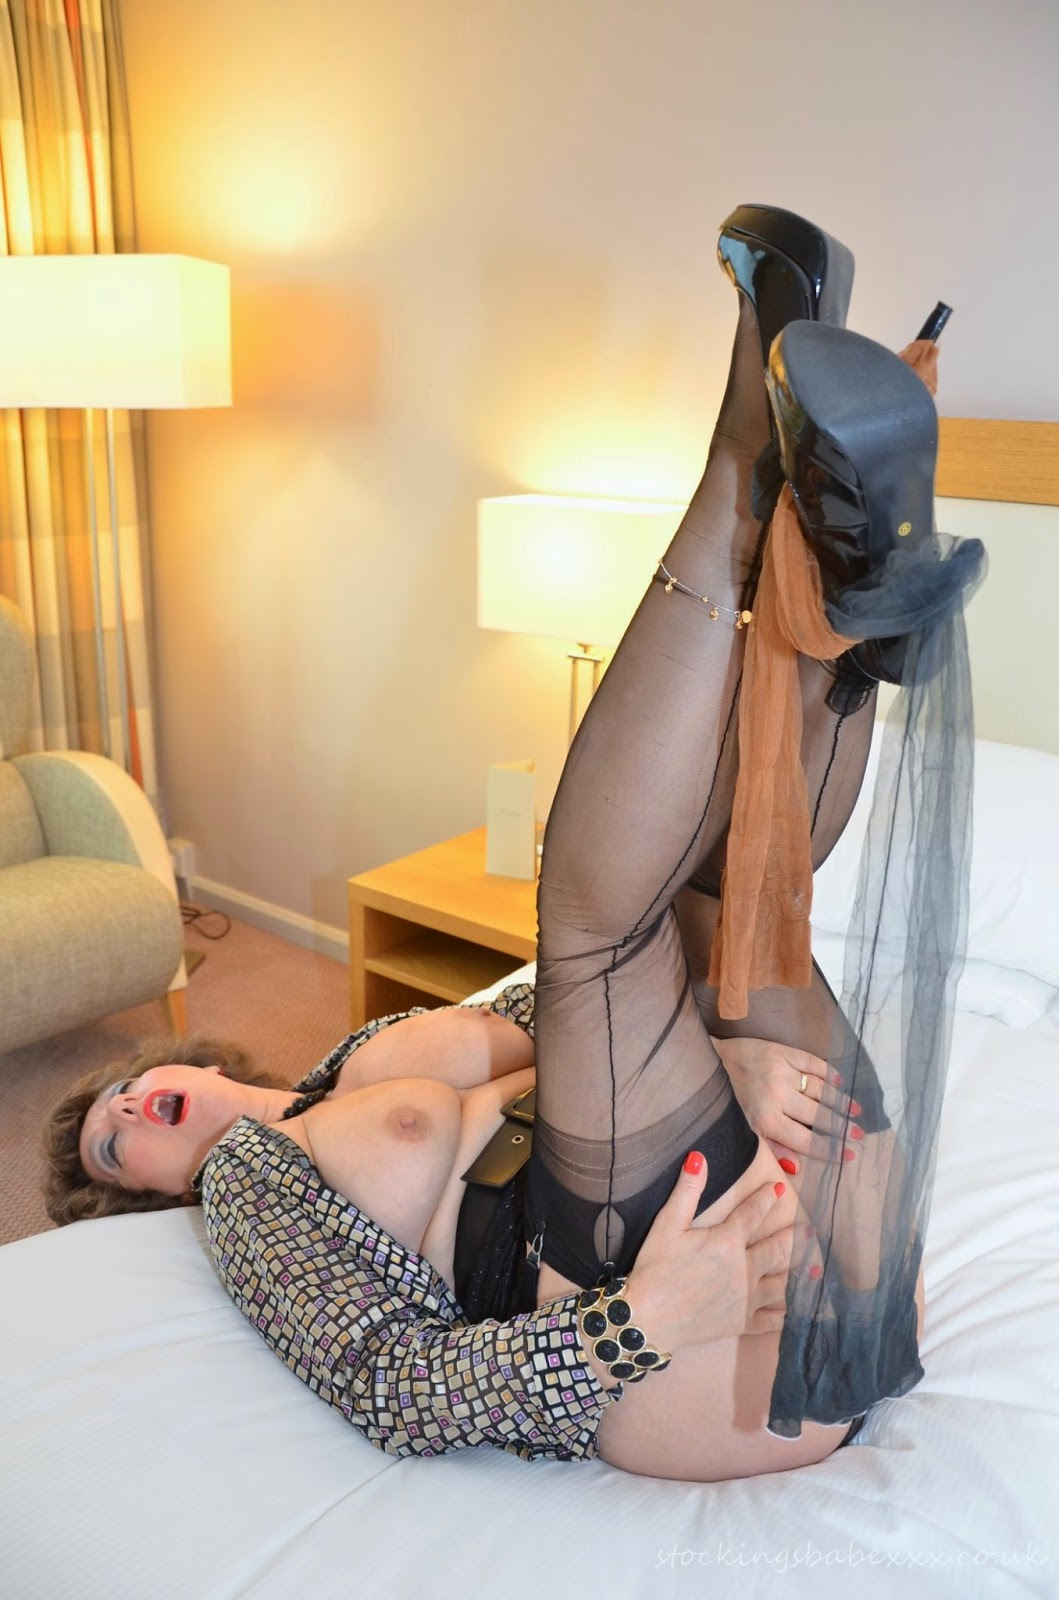 love nylons nylon sex pantyhose for